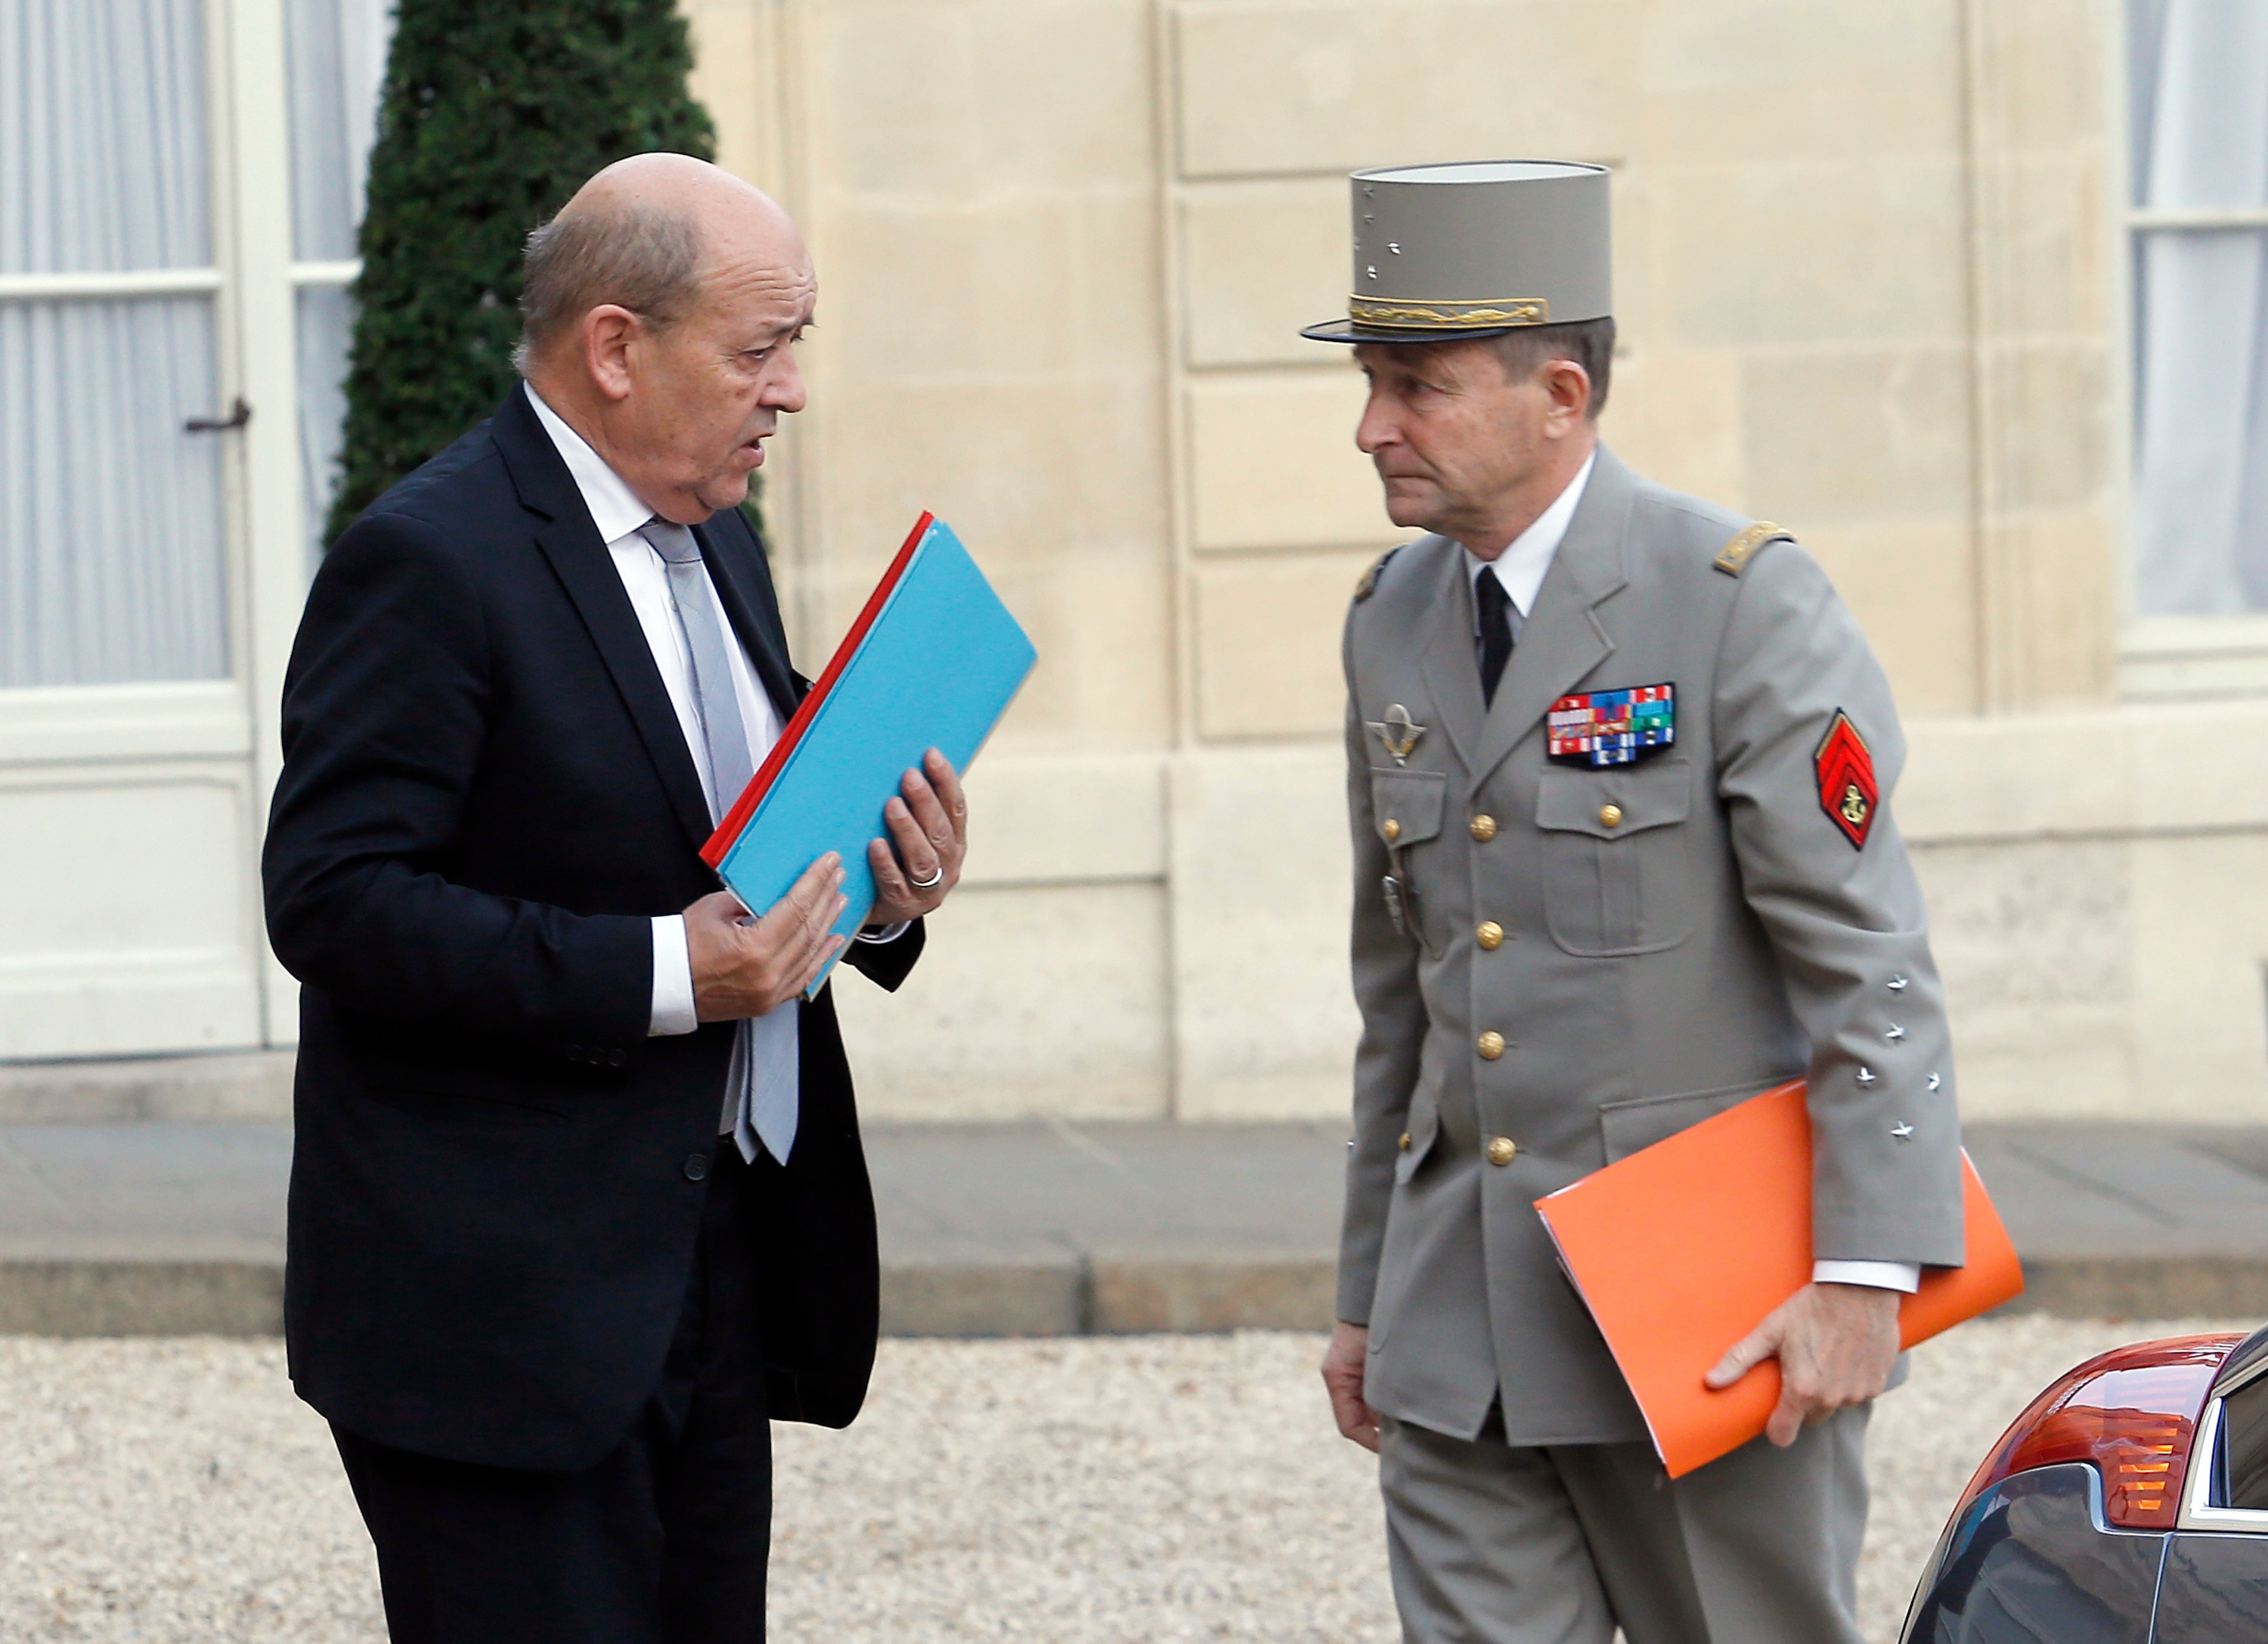 France would reach NATO budget target under top military officer's plan